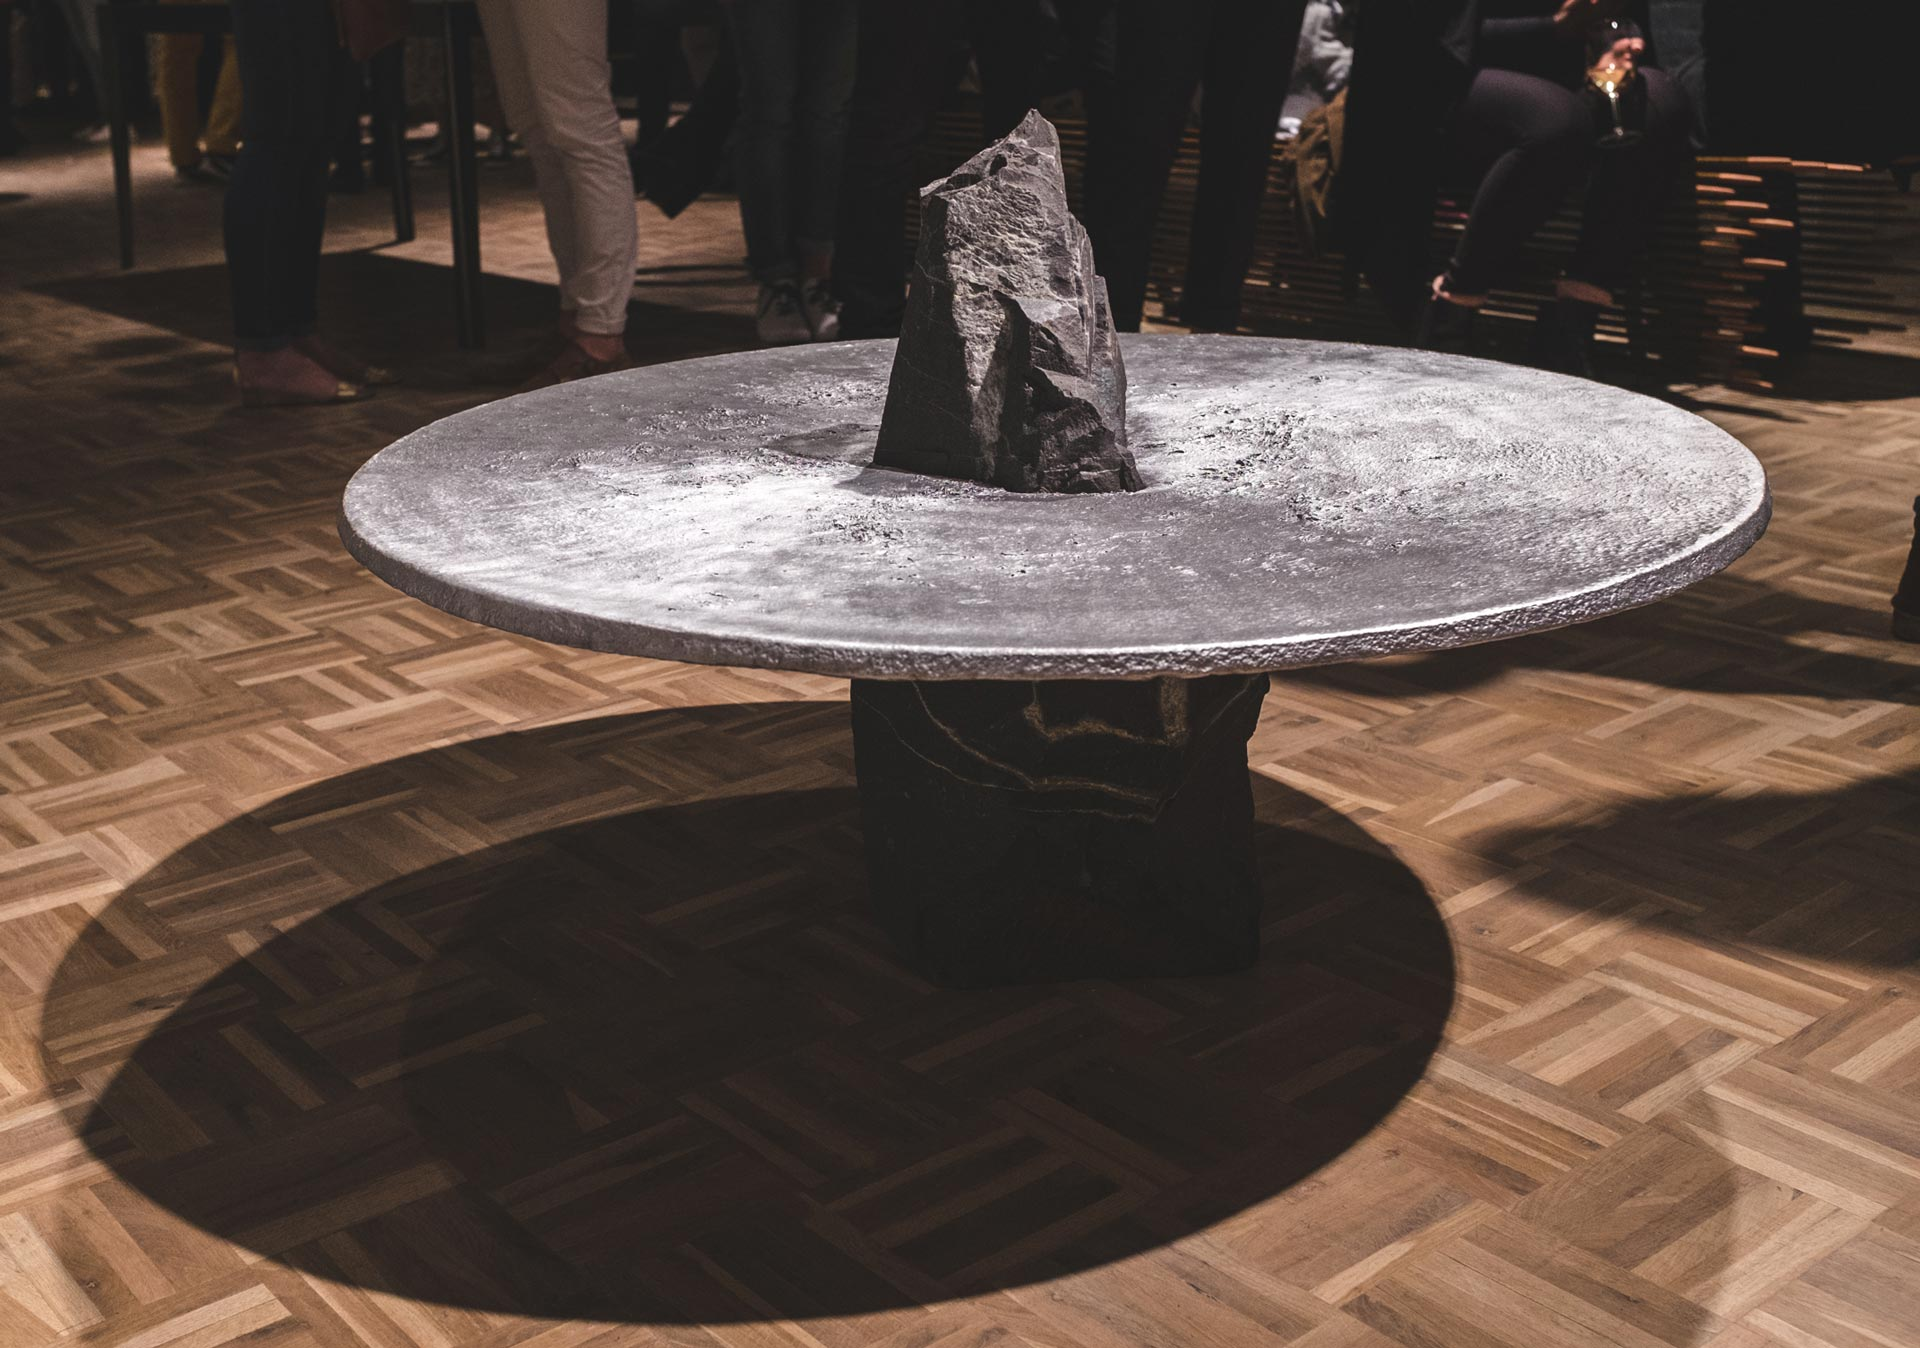 The completered  Lunar Table  in all its glory, on display at an exhibition. (Photo by Devin Paisley)